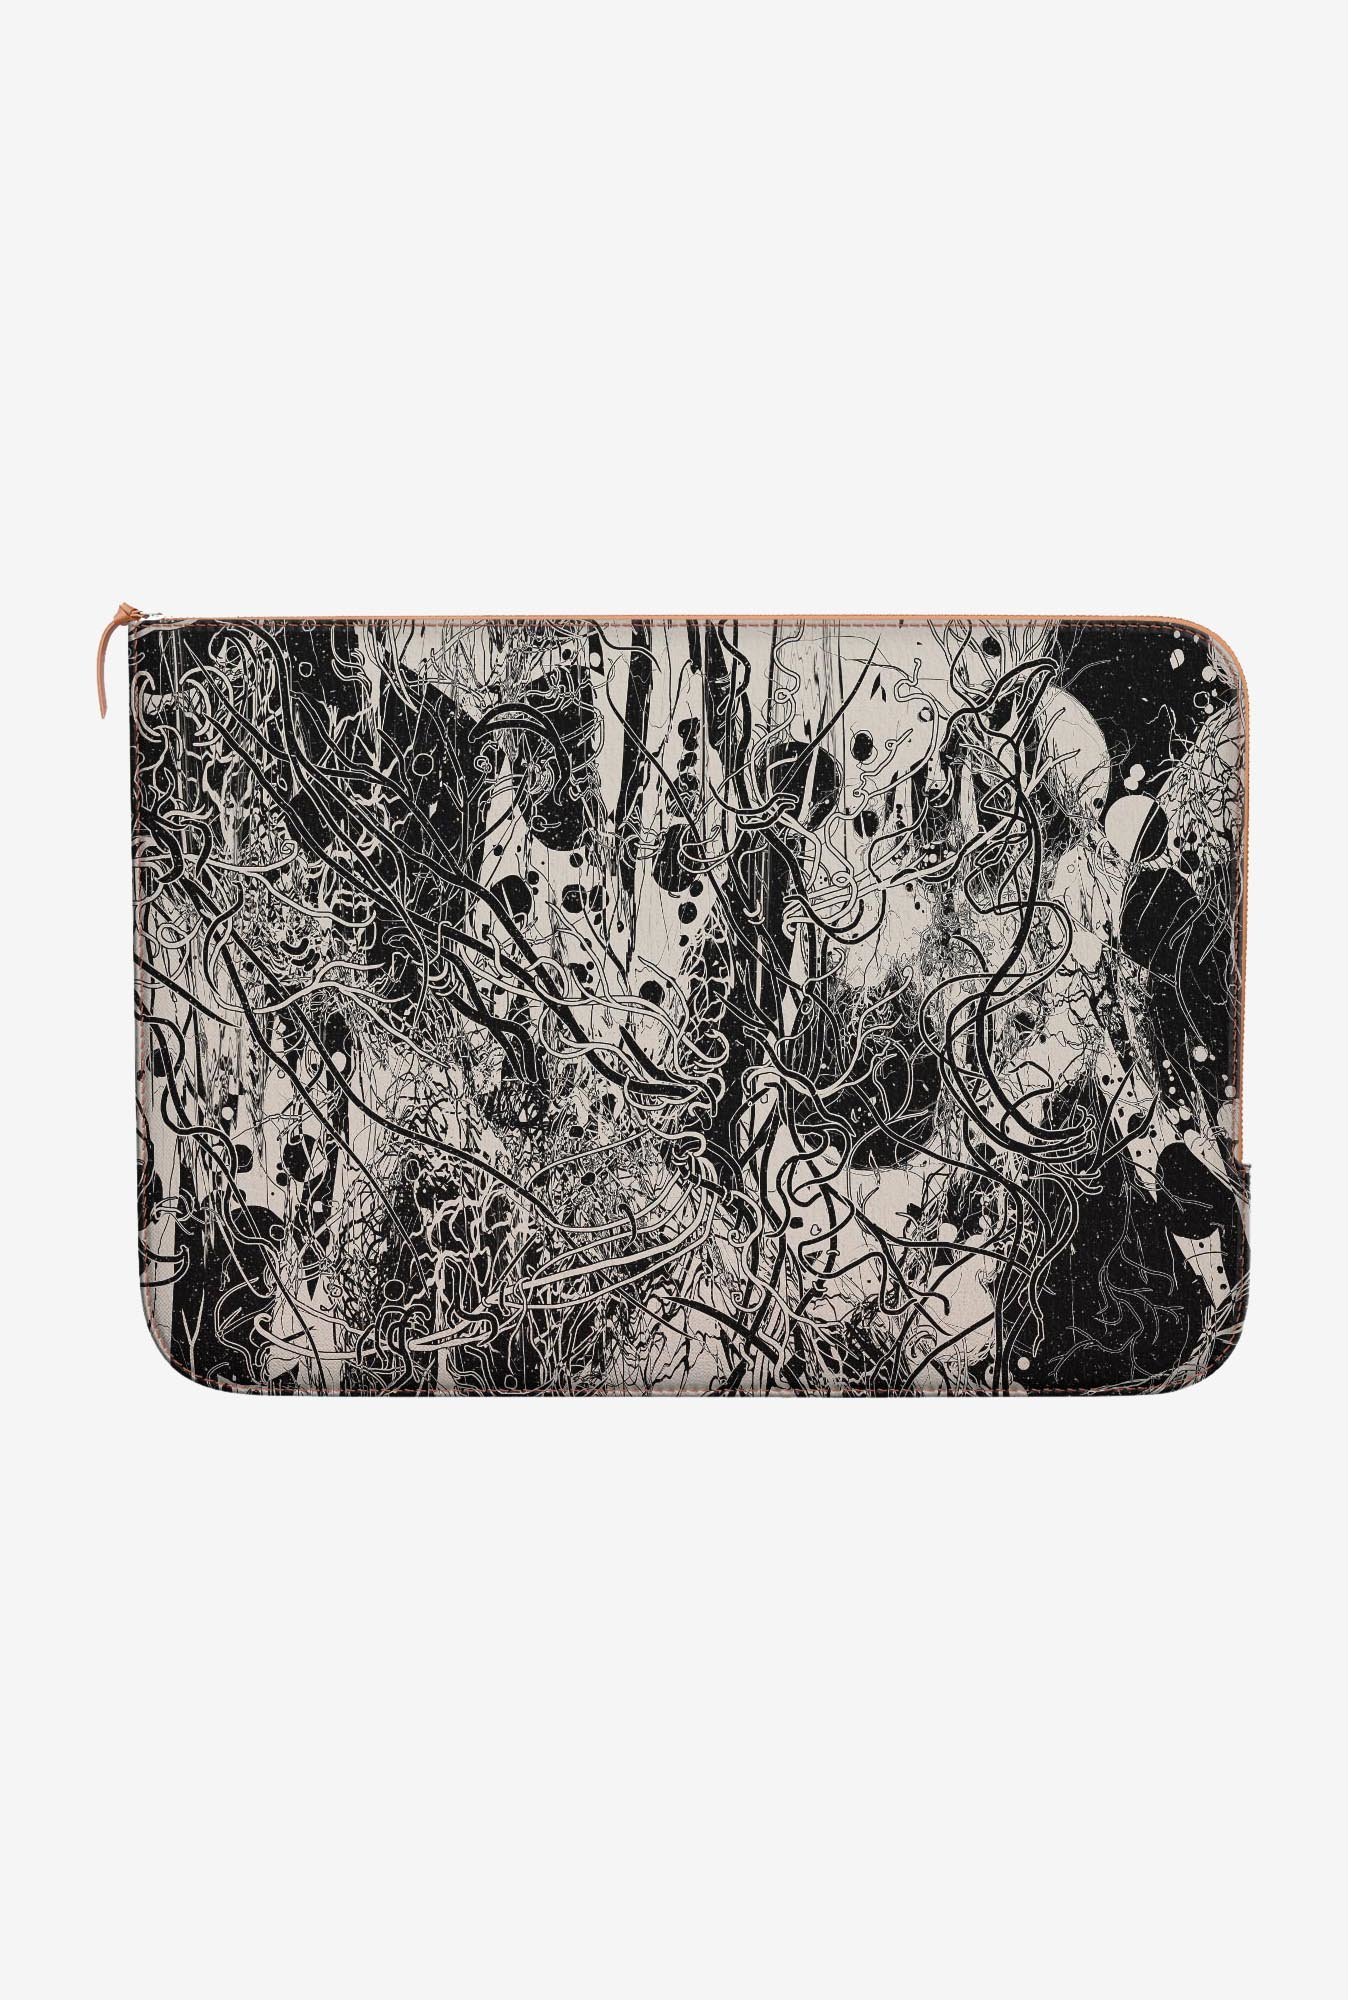 DailyObjects Coexistence MacBook Air 13 Zippered Sleeve